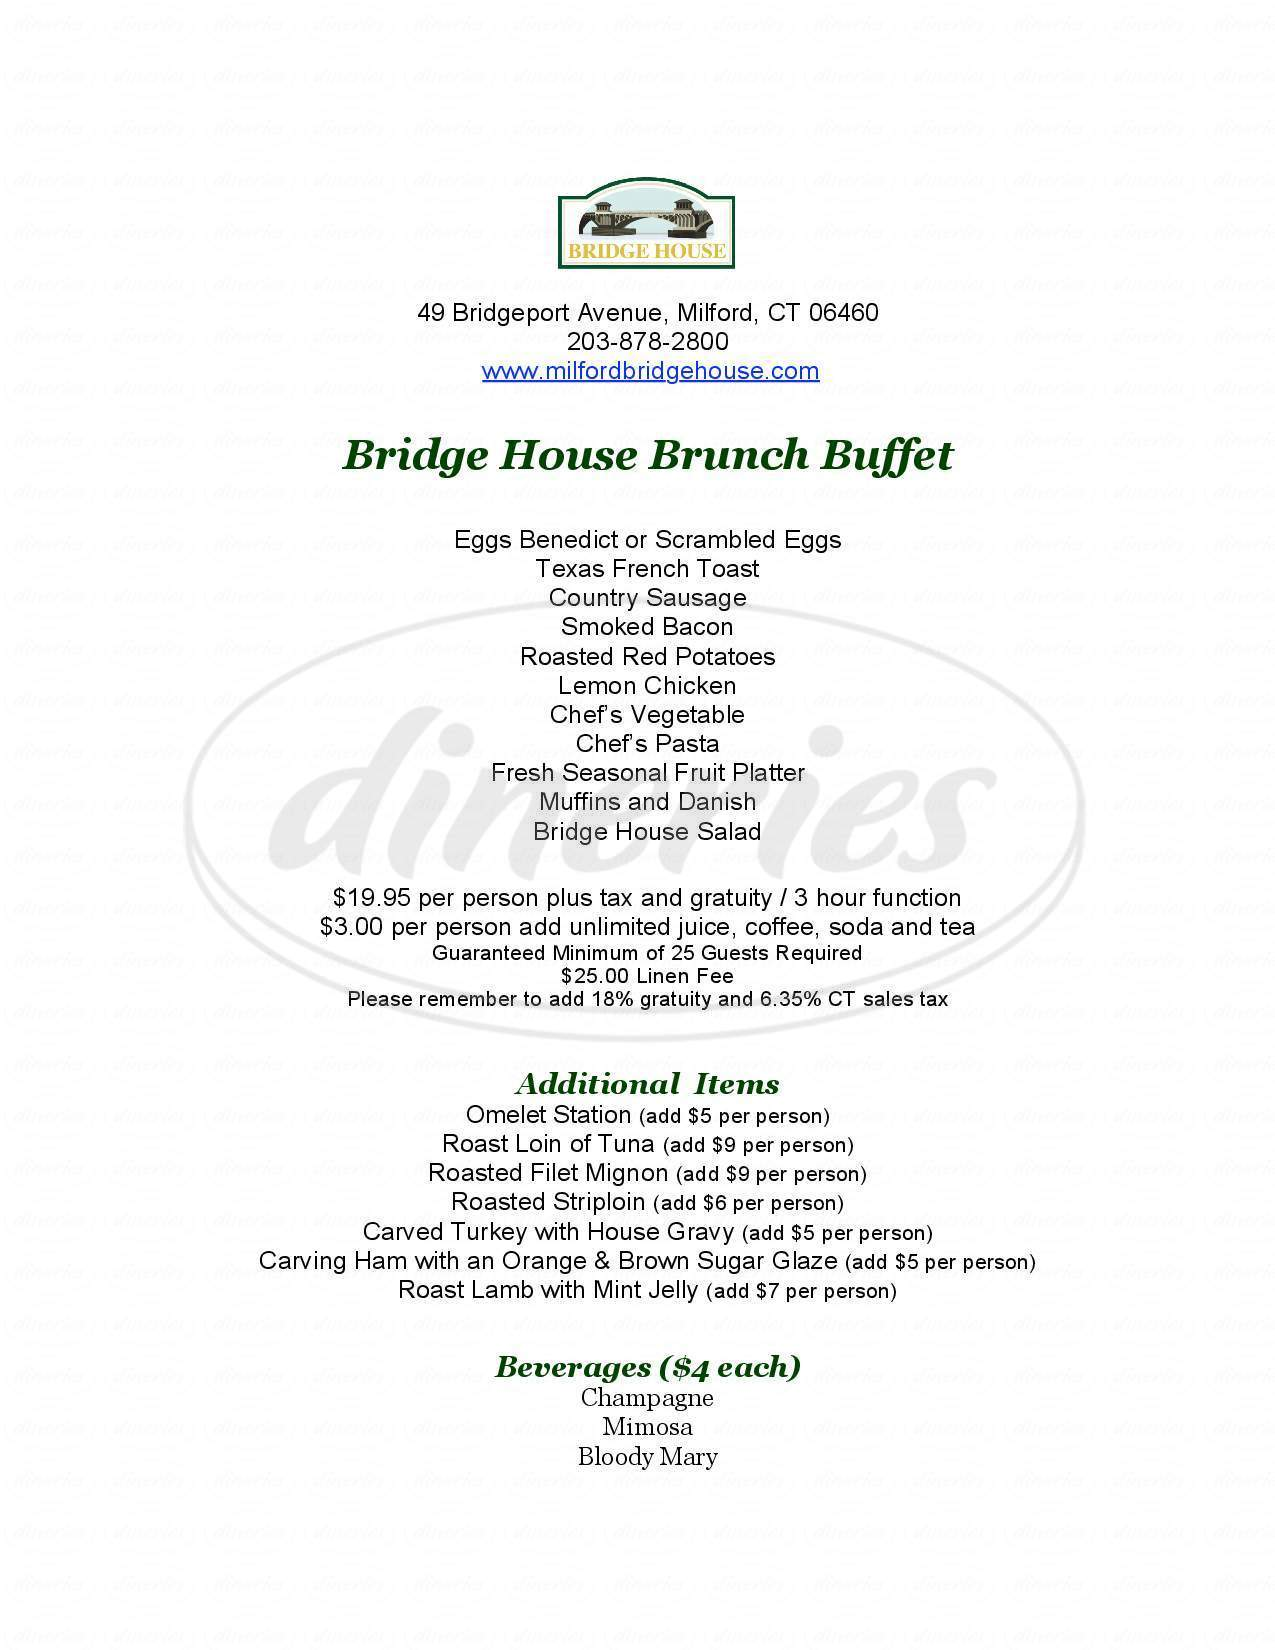 menu for The Bridge House